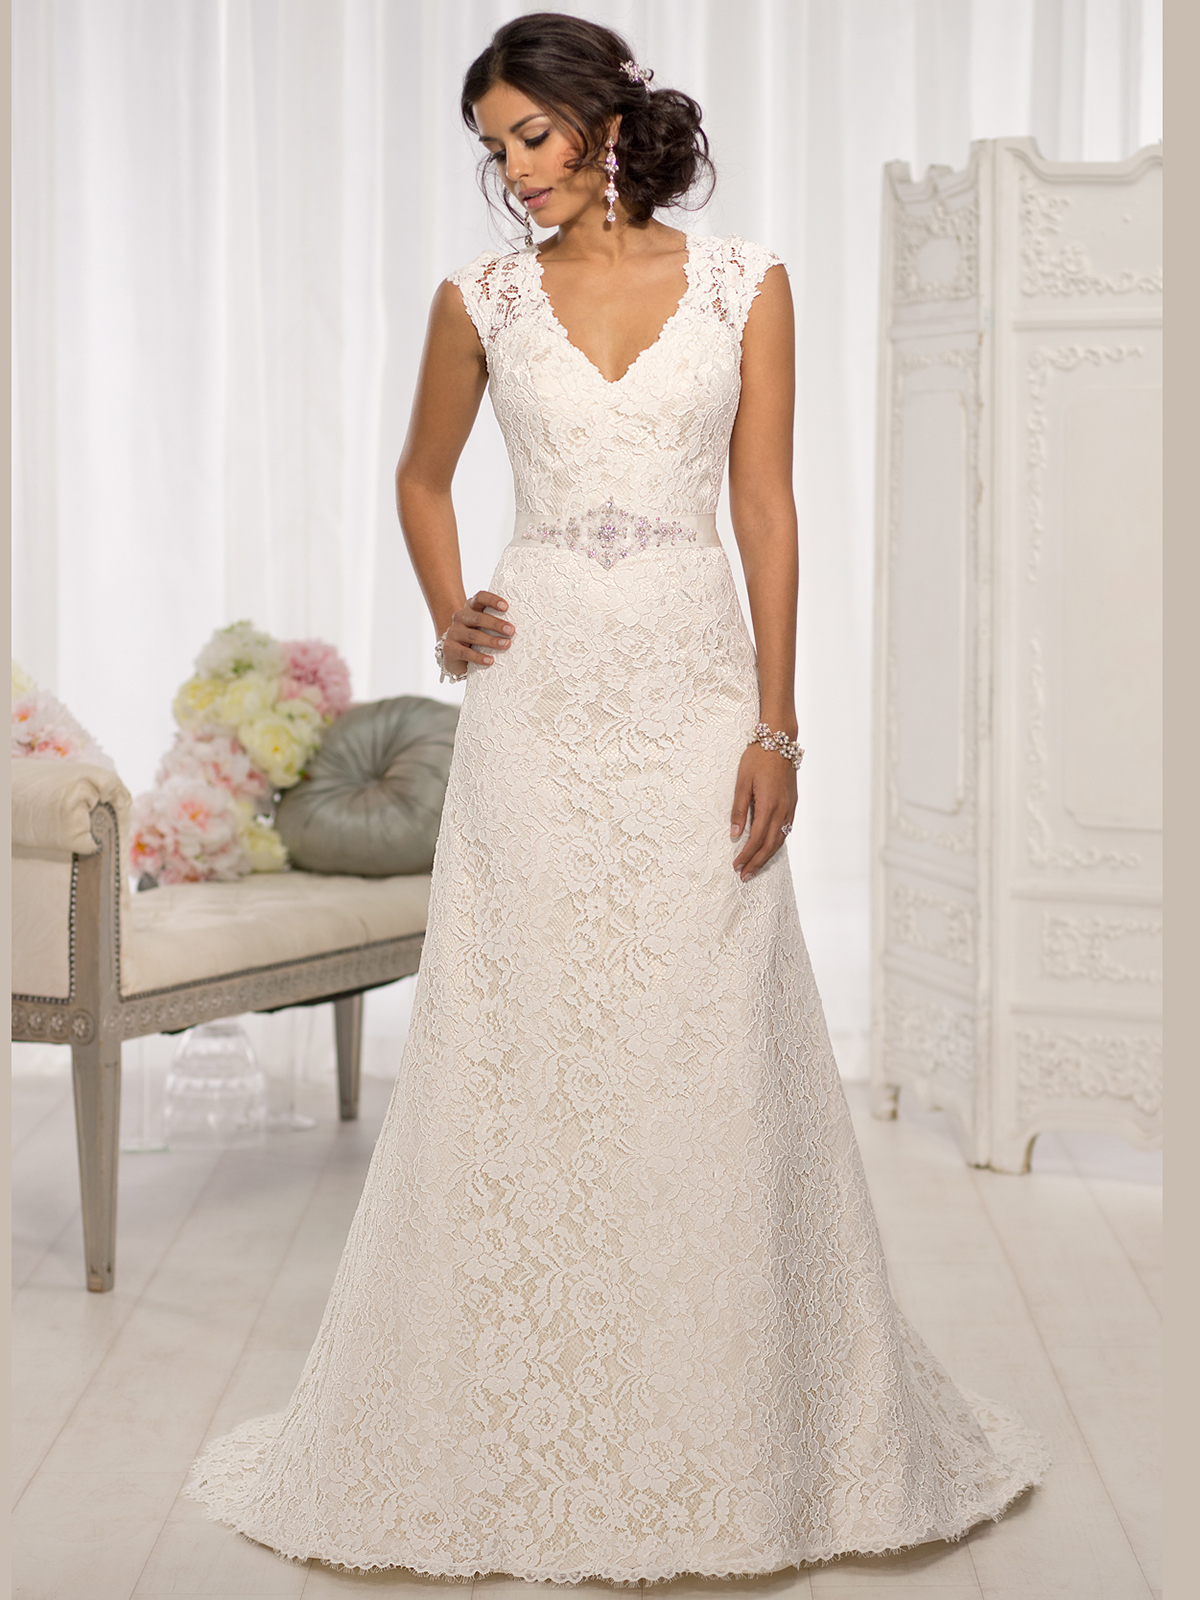 Essense of australia d1598 v neck lace a line bridal dress for V neck wedding dresses australia